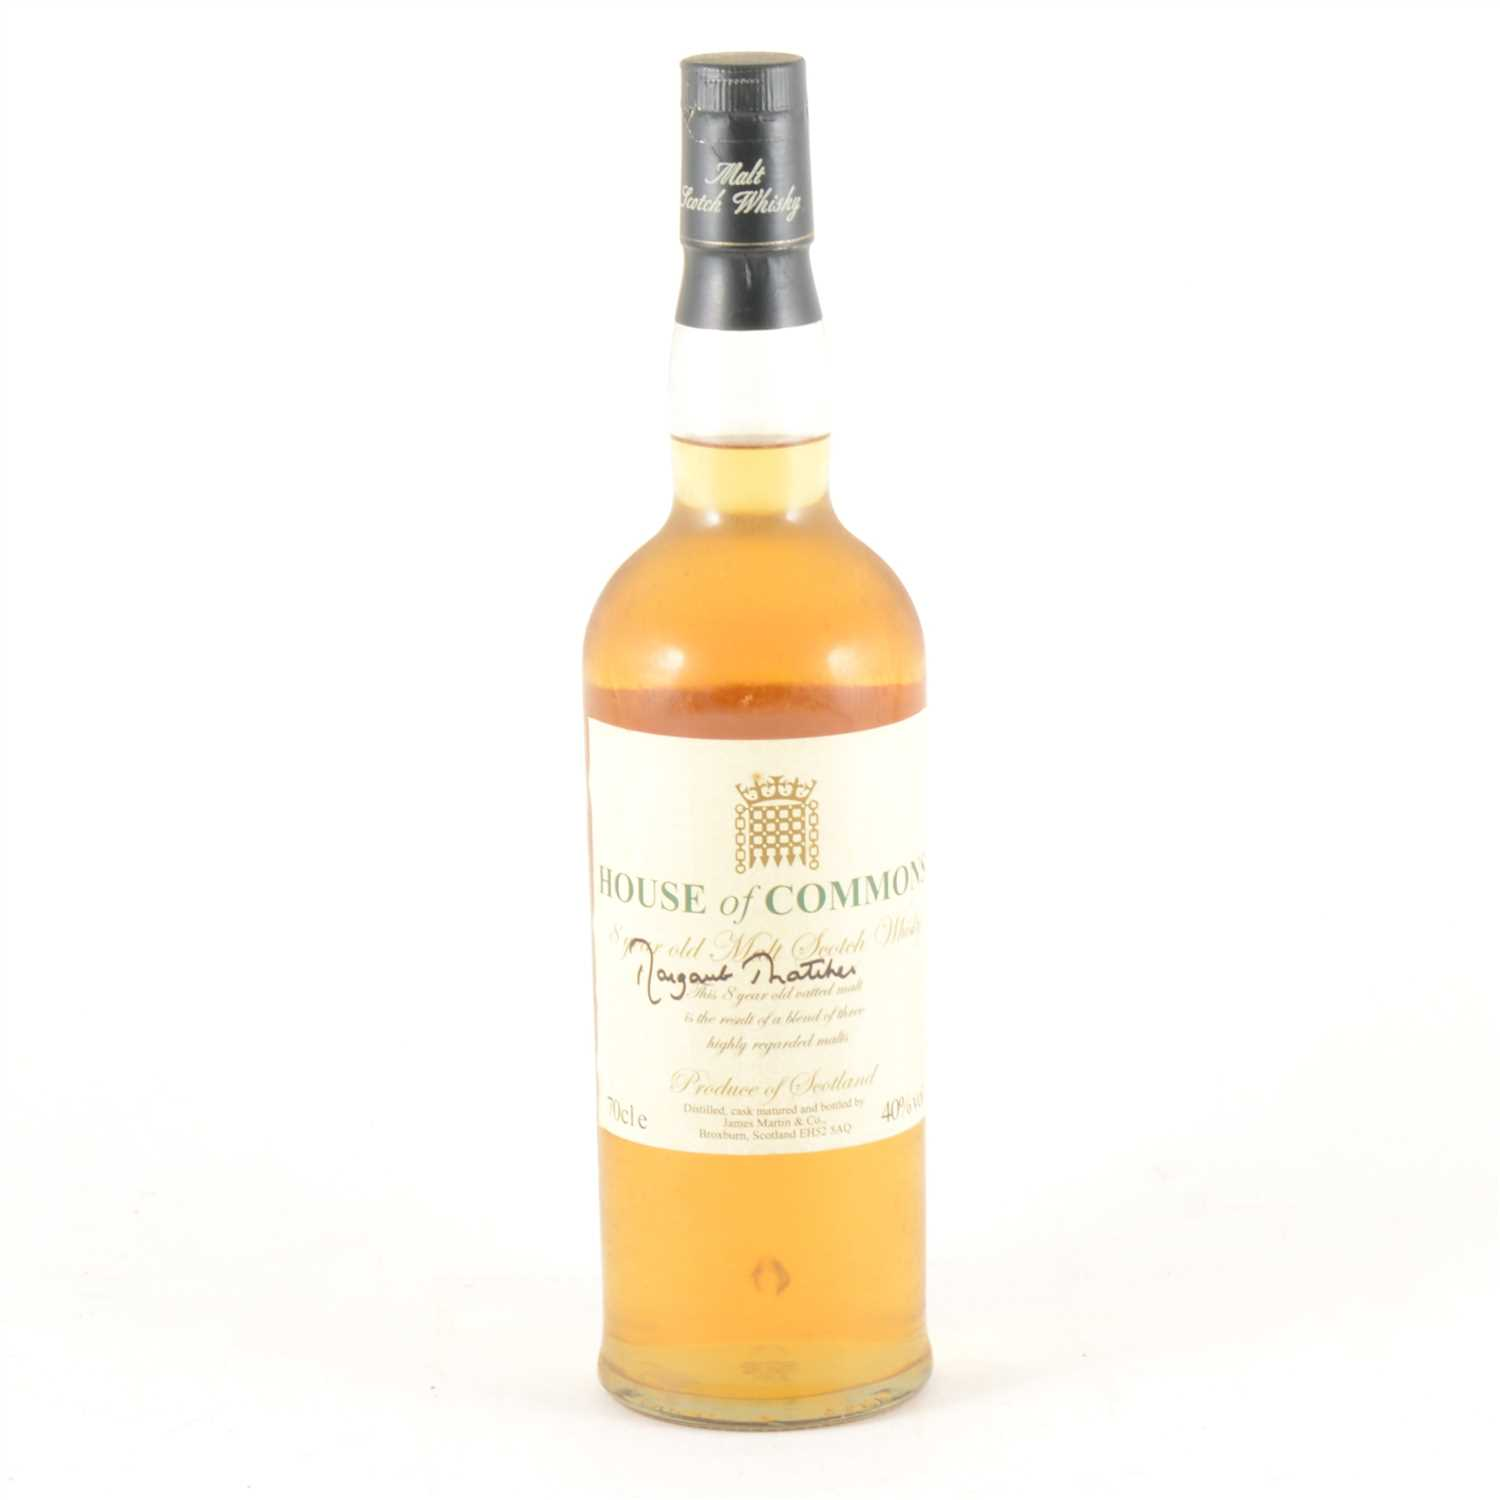 138 - House of Commons 8 Year Old Malt Scotch Whisky 70cl, signed Margaret Thatcher.